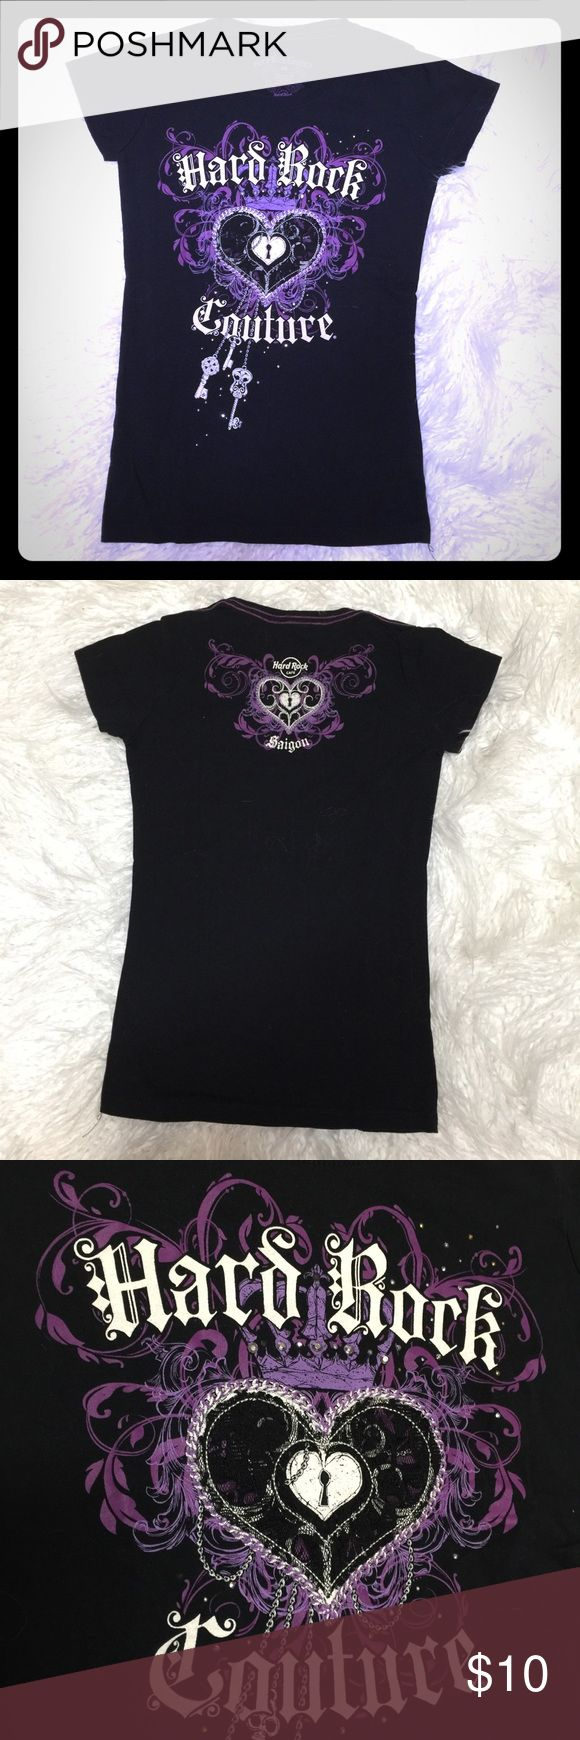 """Beautiful Authentic Girls Top Hard Rock Cafe XS Like new condition Authentic guaranteed From Hard Rock Cafe Saigon Vietnam  100% Cotton Black soft fabric with gorgeous purple prints and white cursive letters  12"""" Shoulder , 14"""" chest, 23"""" length. Hard Rock Cafe Tops Tees - Short Sleeve"""